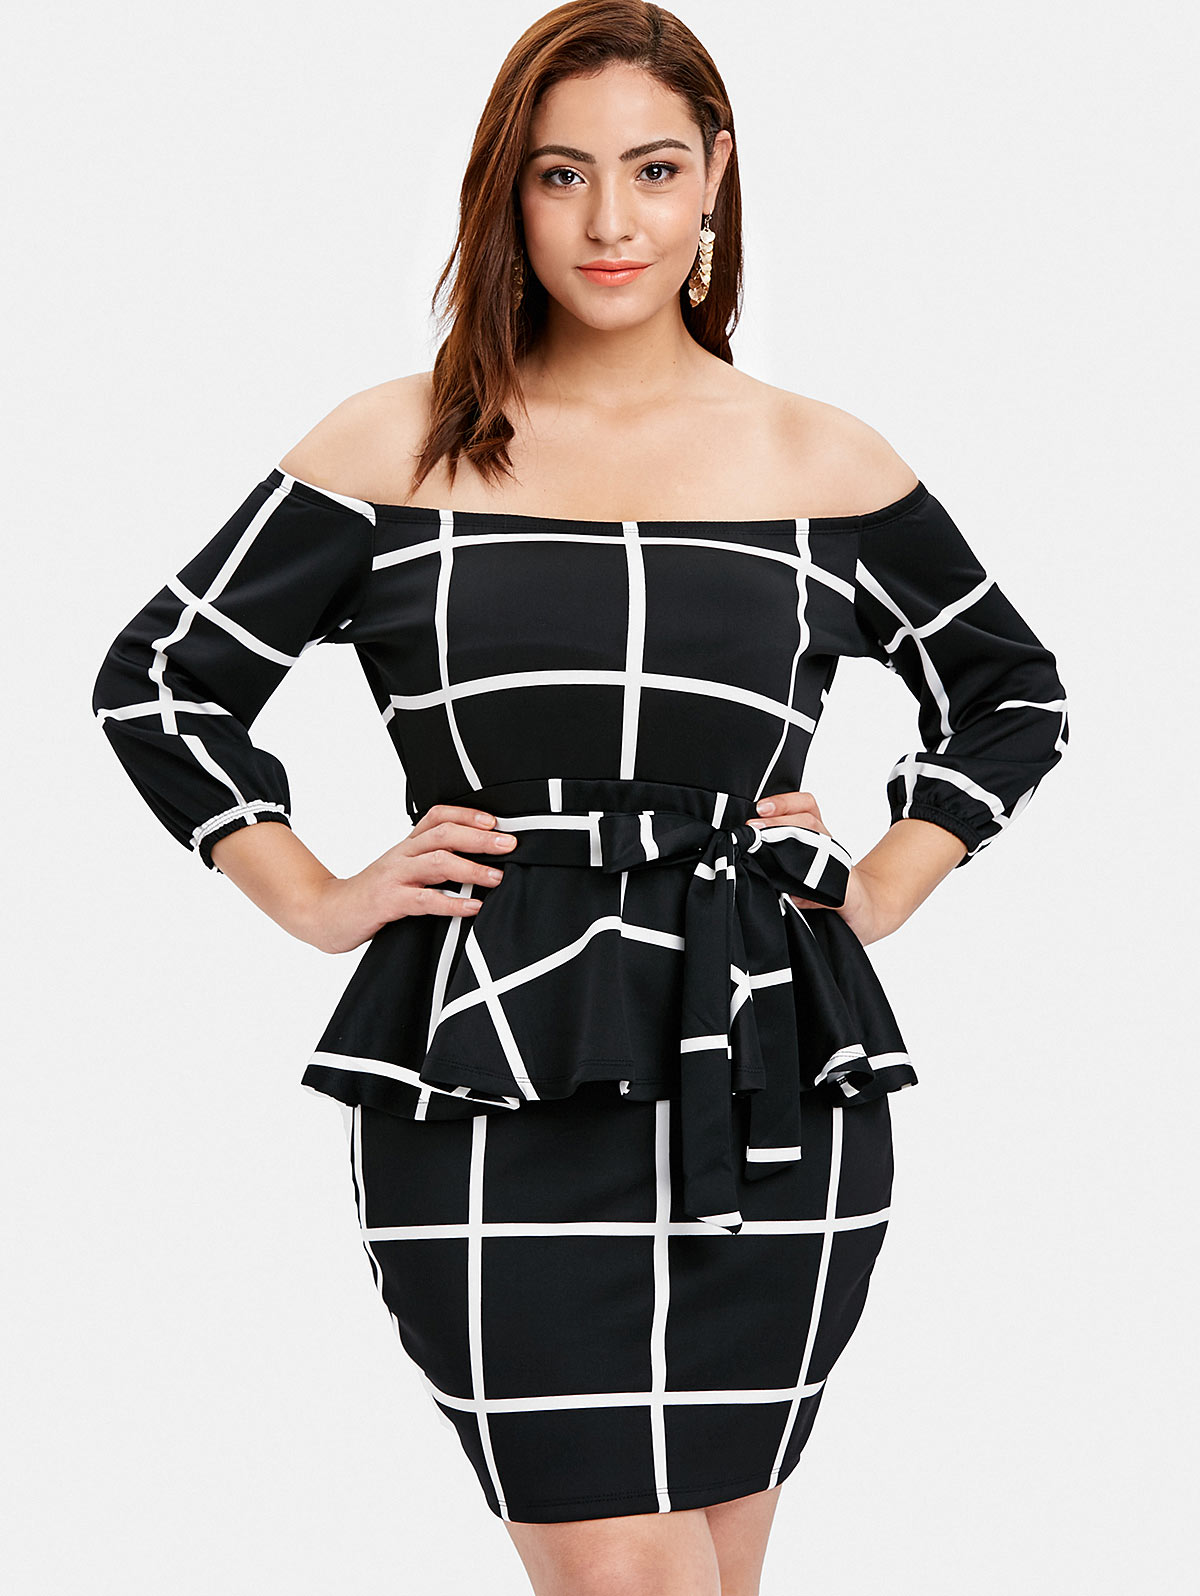 Silhouette Bodycon Dresses Length Mini Neckline Off The Shoulder Sleeve  Length 3 4 Length Sleeves Pattern Type Plaid With Belt Yes  Season Fall 750682fc0200